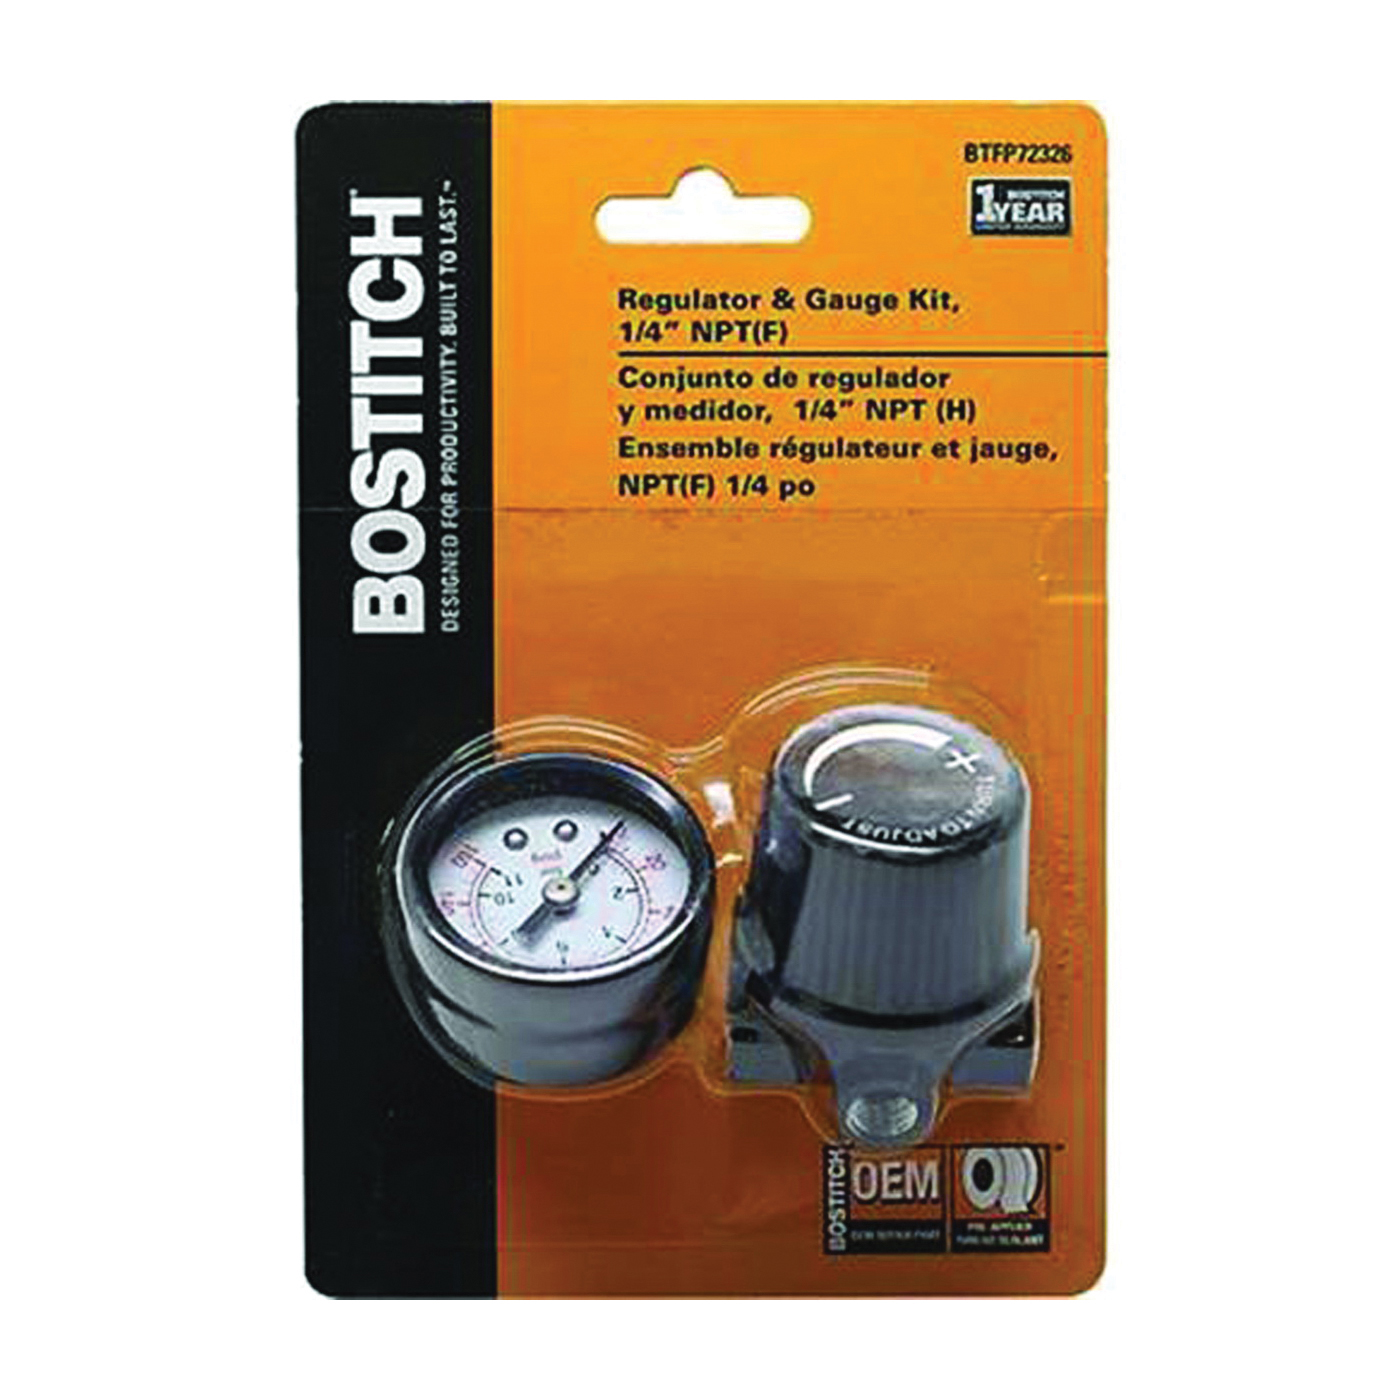 Picture of Bostitch BTFP72326 Regulator and Gauge Kit, Mini